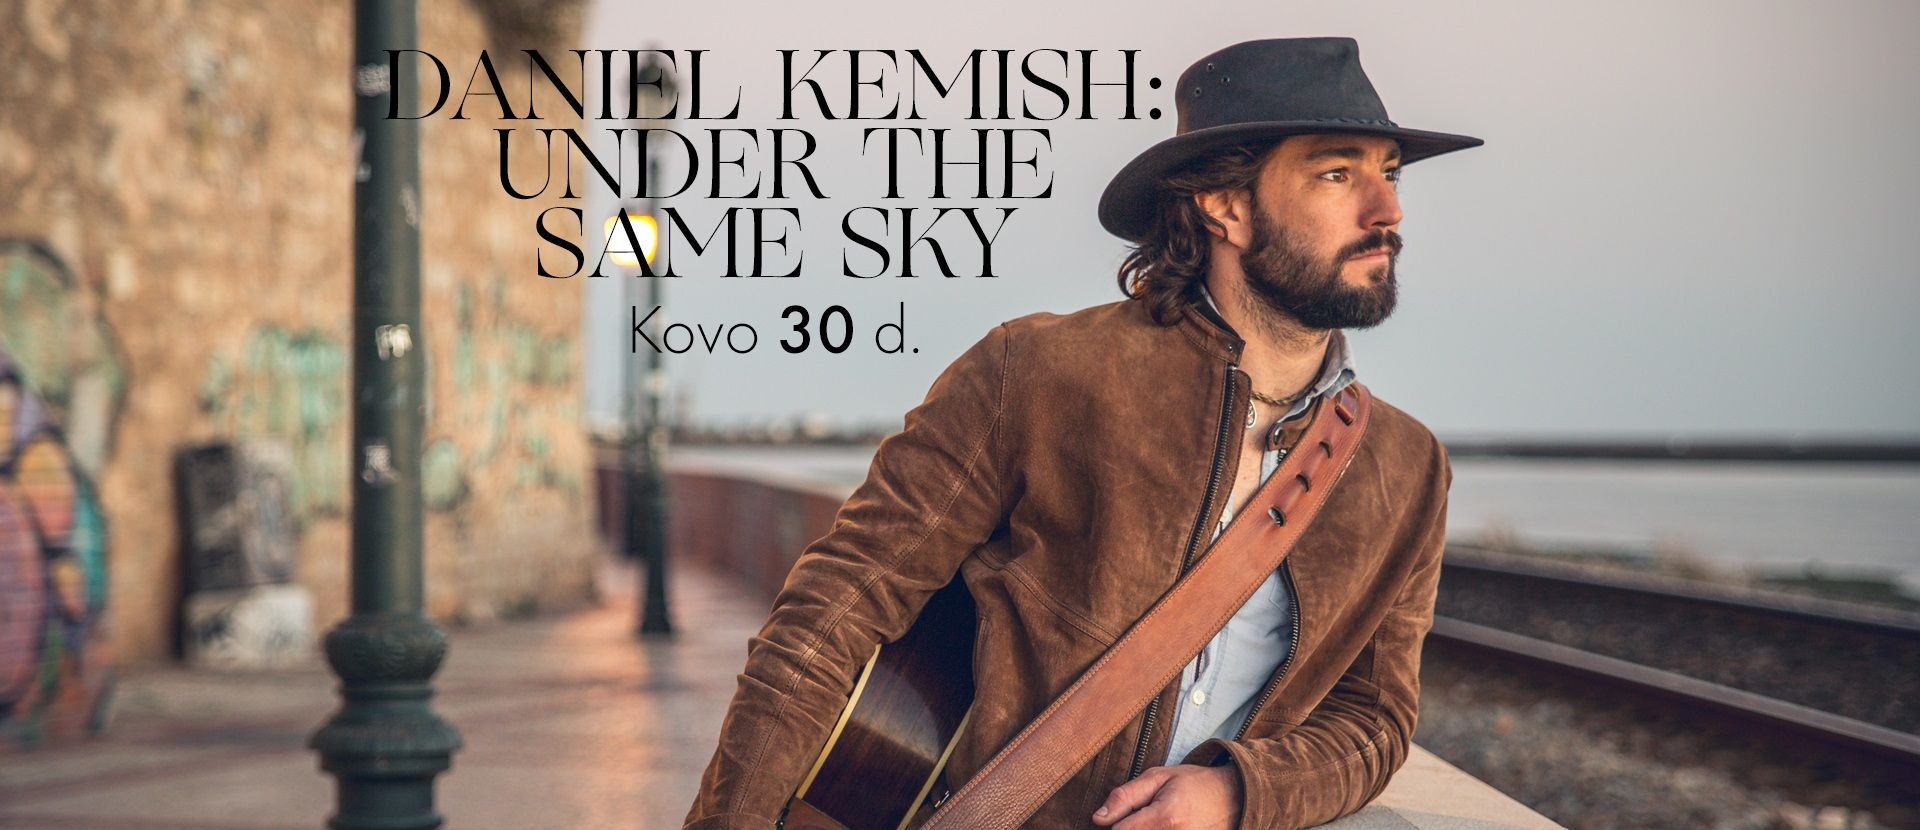 Kristupo festivalis: DANIEL KEMISH: UNDER THE SAME SKY